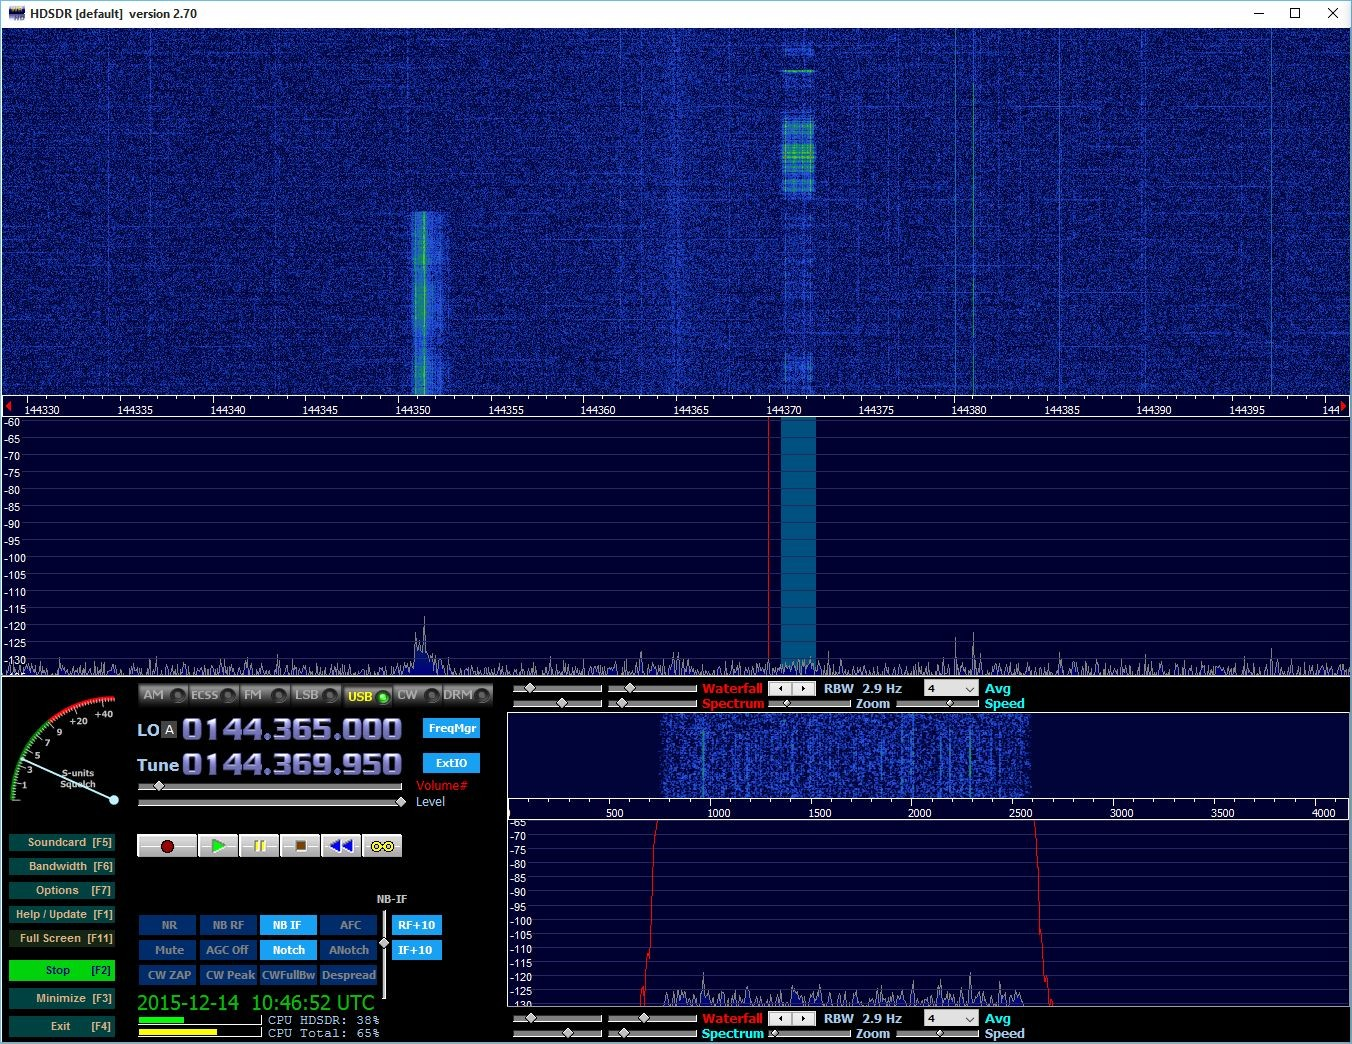 Good burst from ES3RF on 144.70